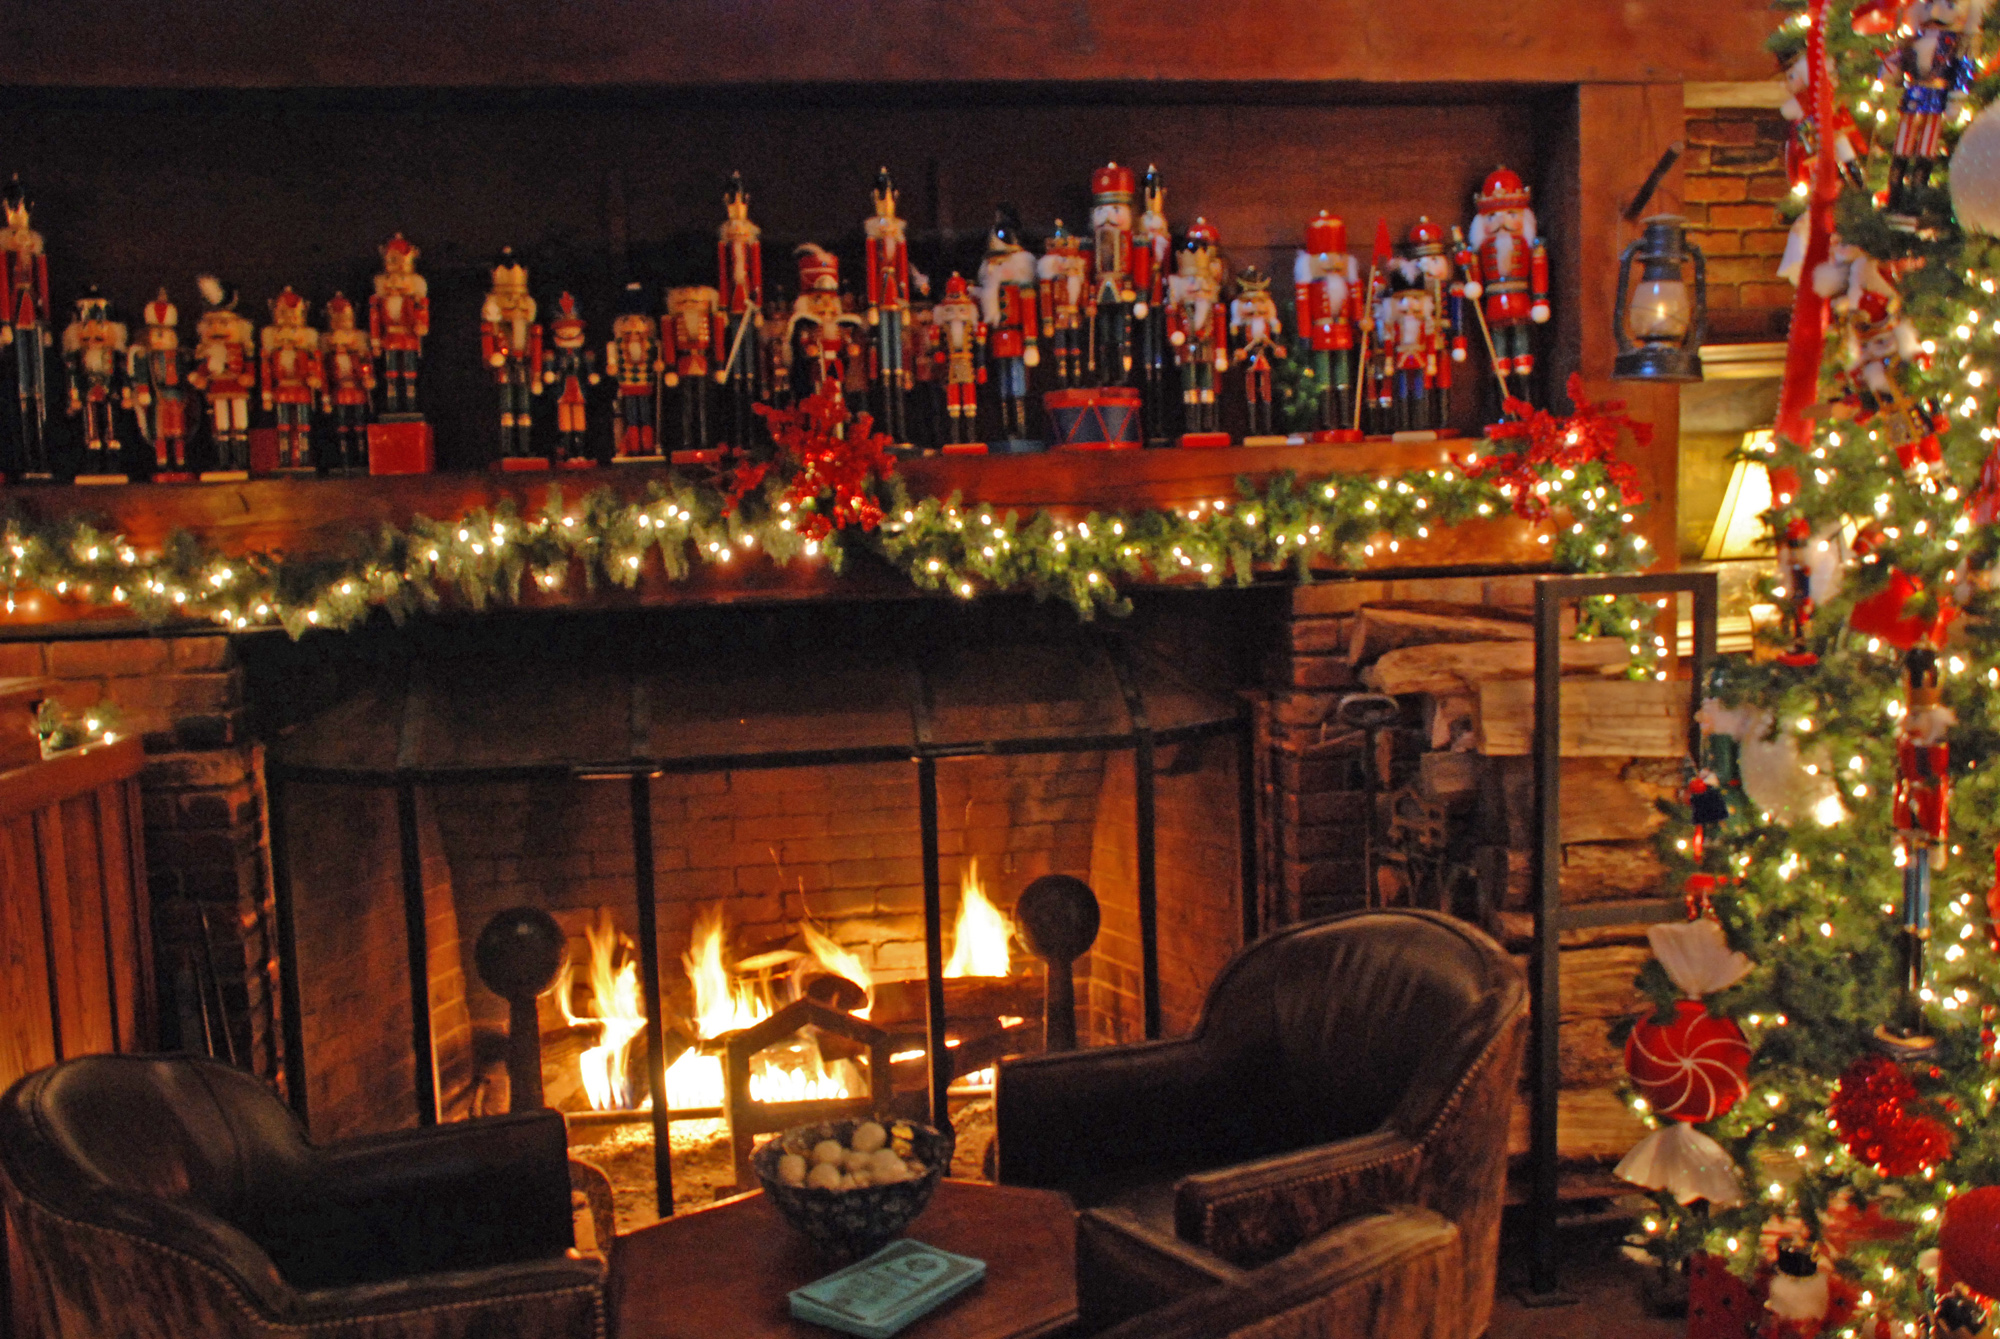 Christmas fireplace fire holiday festive decorations g wallpaper ...